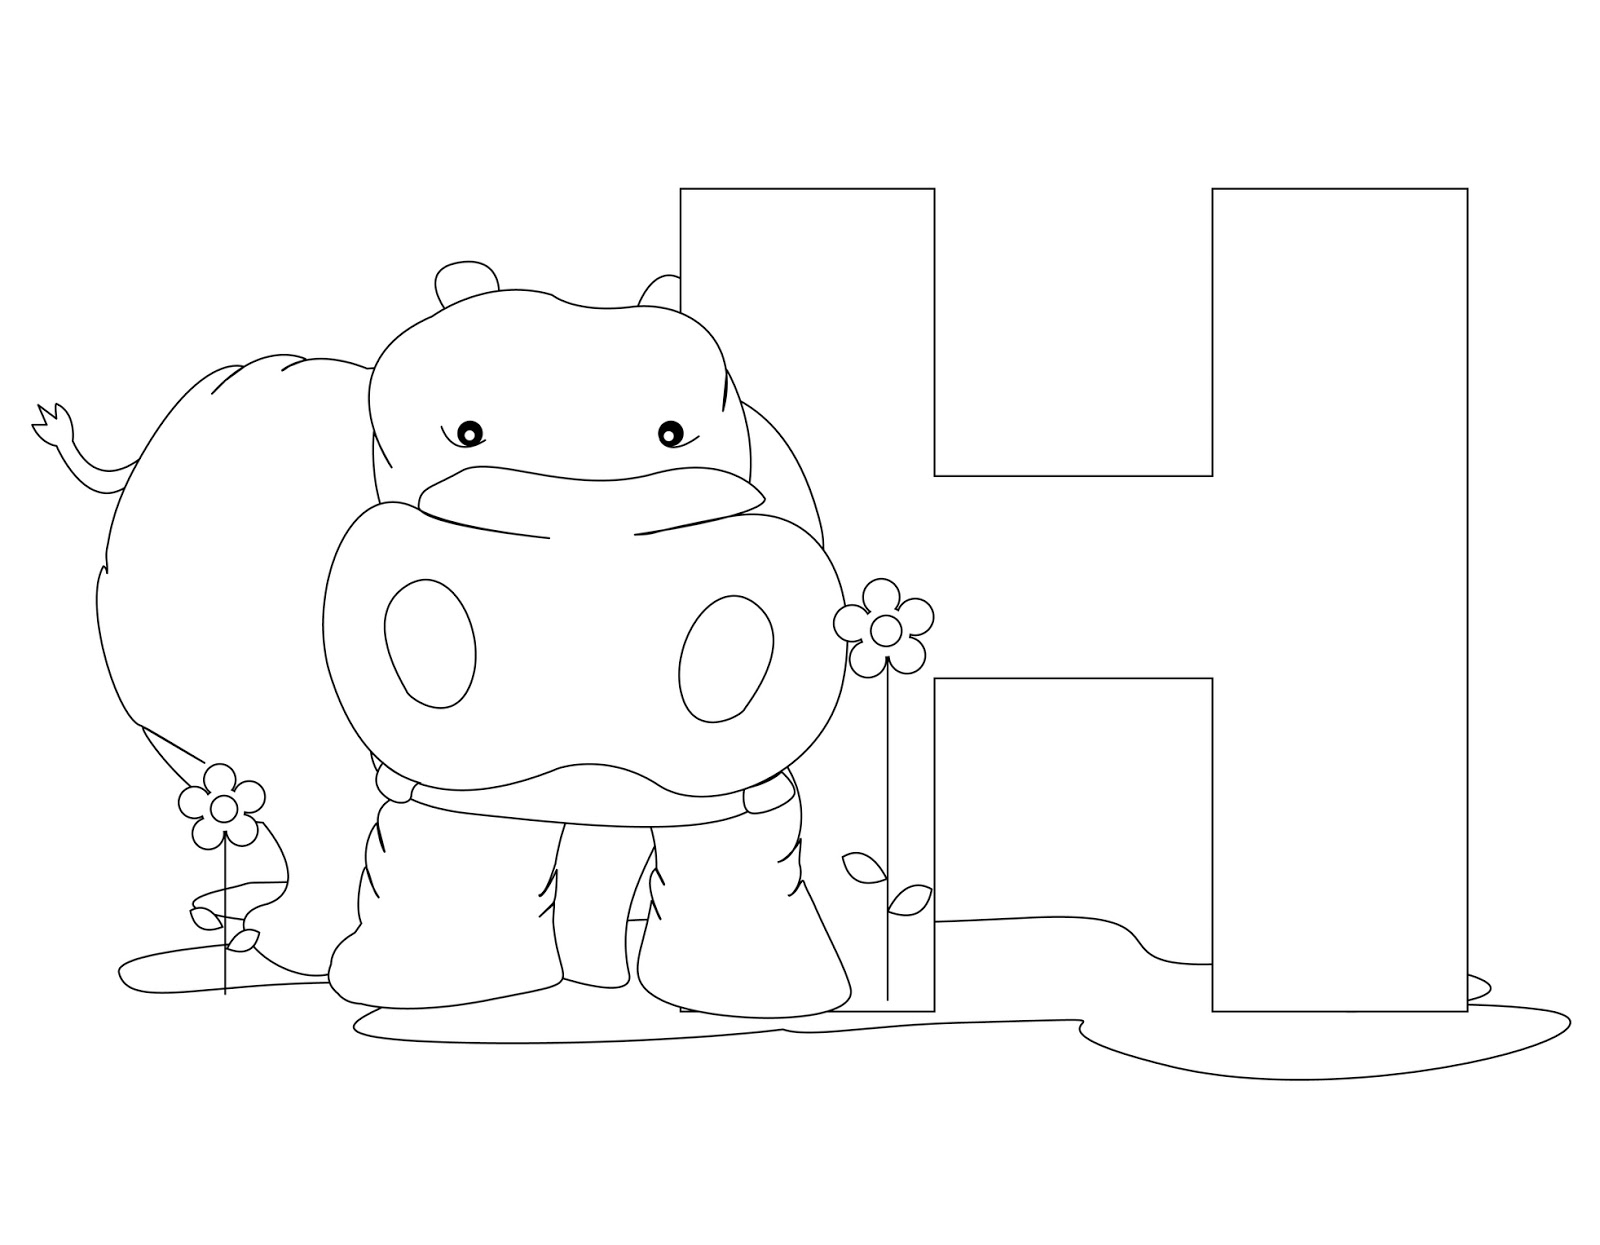 letter a coloring page animal alphabet coloring letter w coloring child coloring page a coloring letter